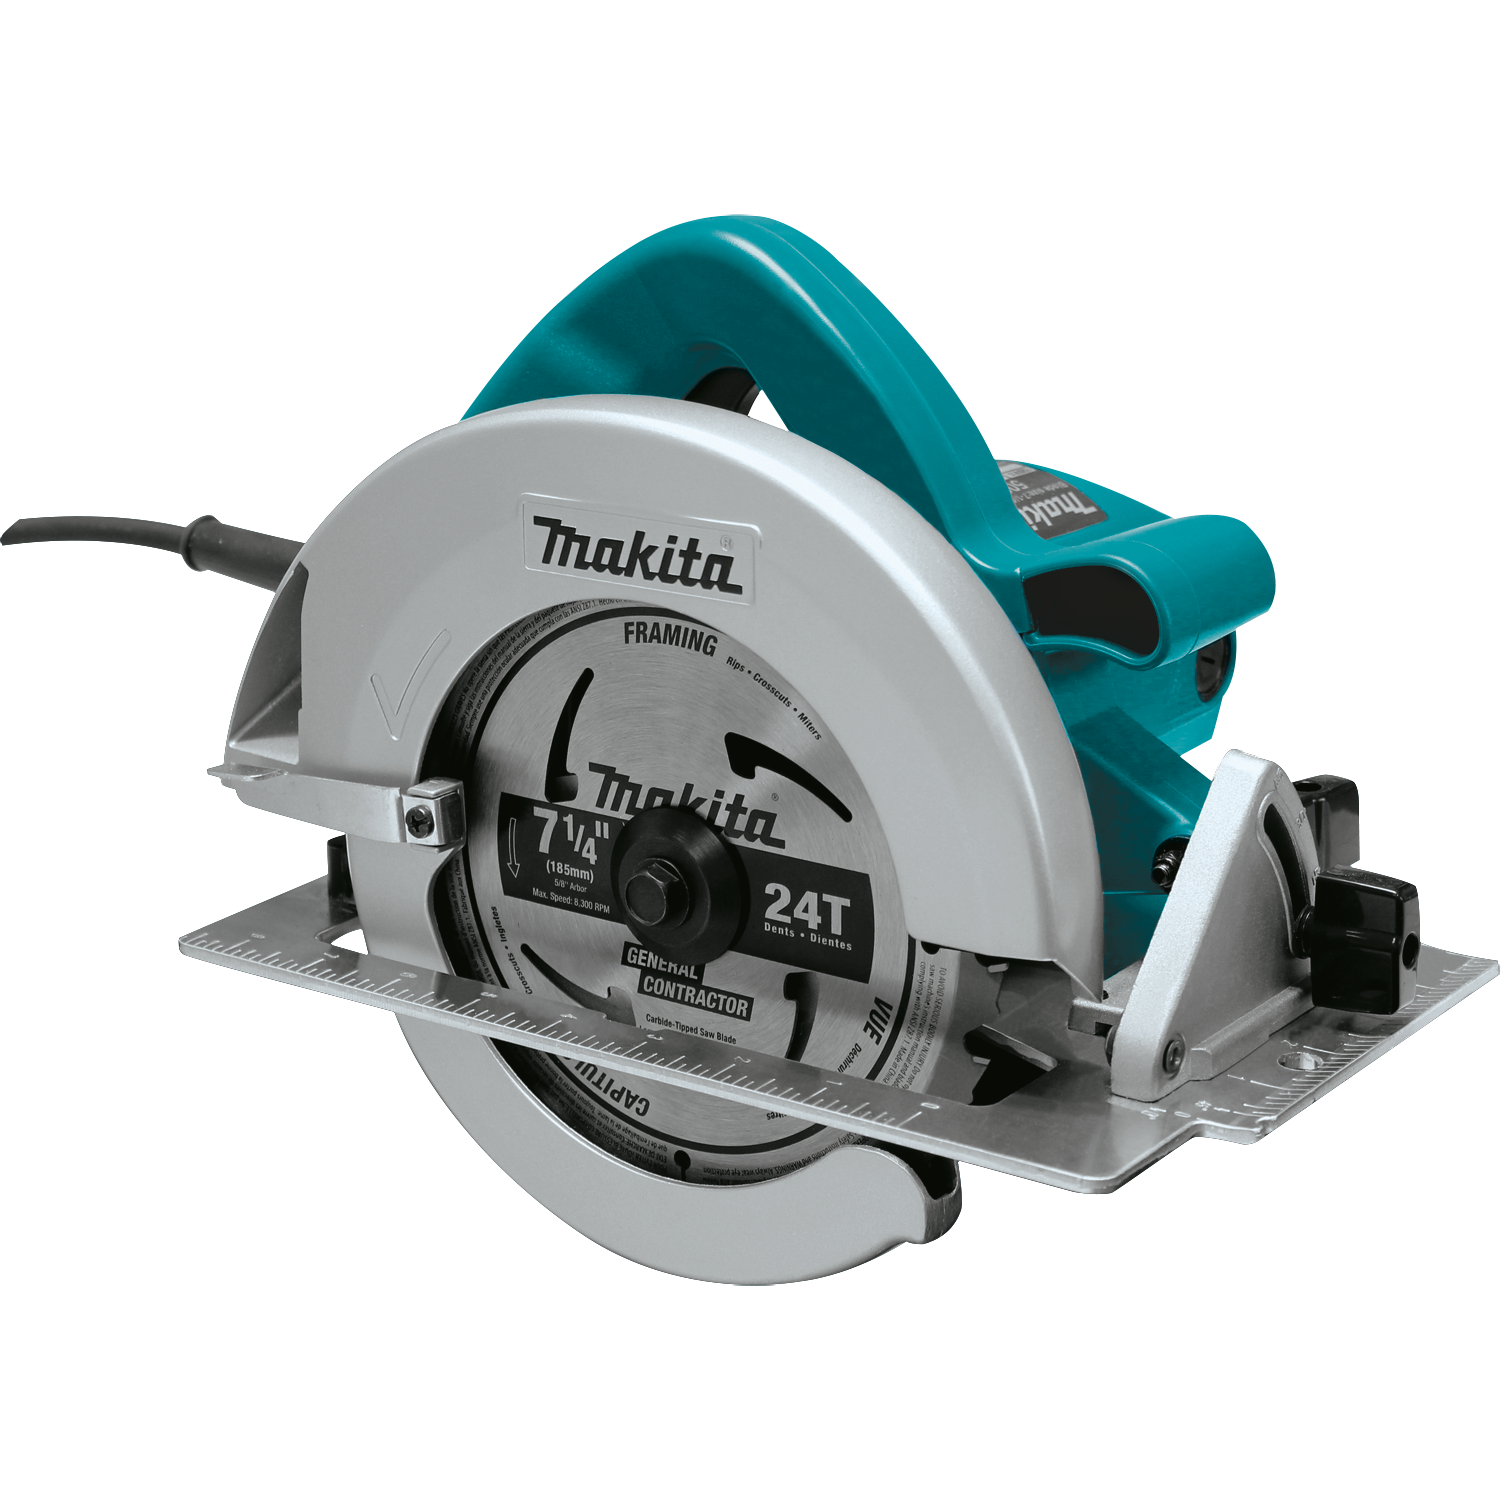 Makita usa product details 5007f 5007f greentooth Image collections